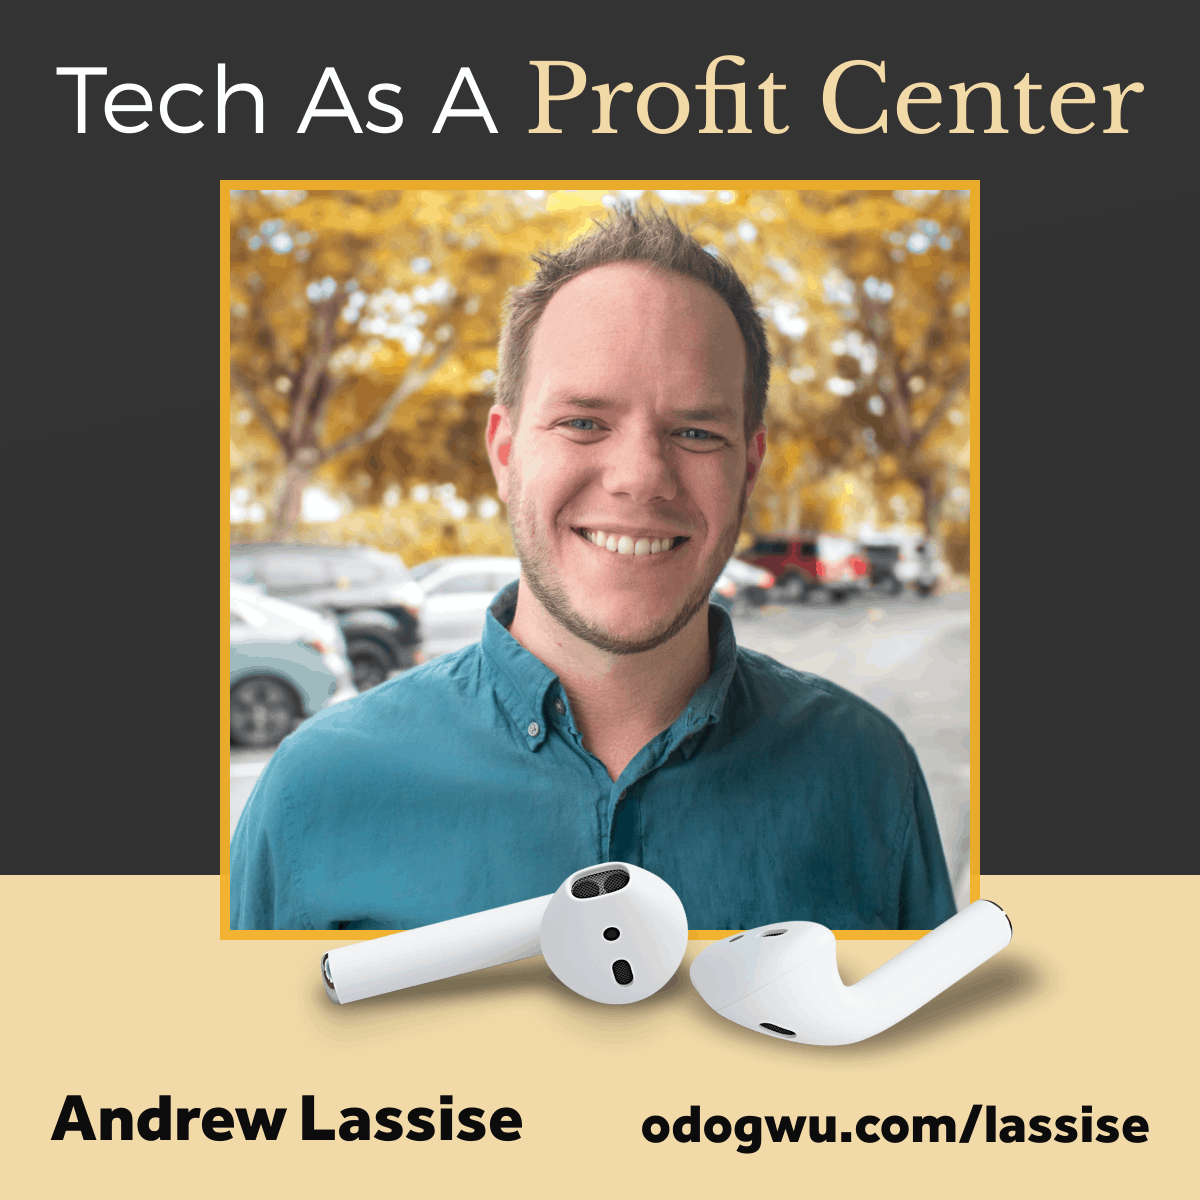 Andrew Lassise Teaches How Accountants Can Turn Their Tech Into A Profit Center